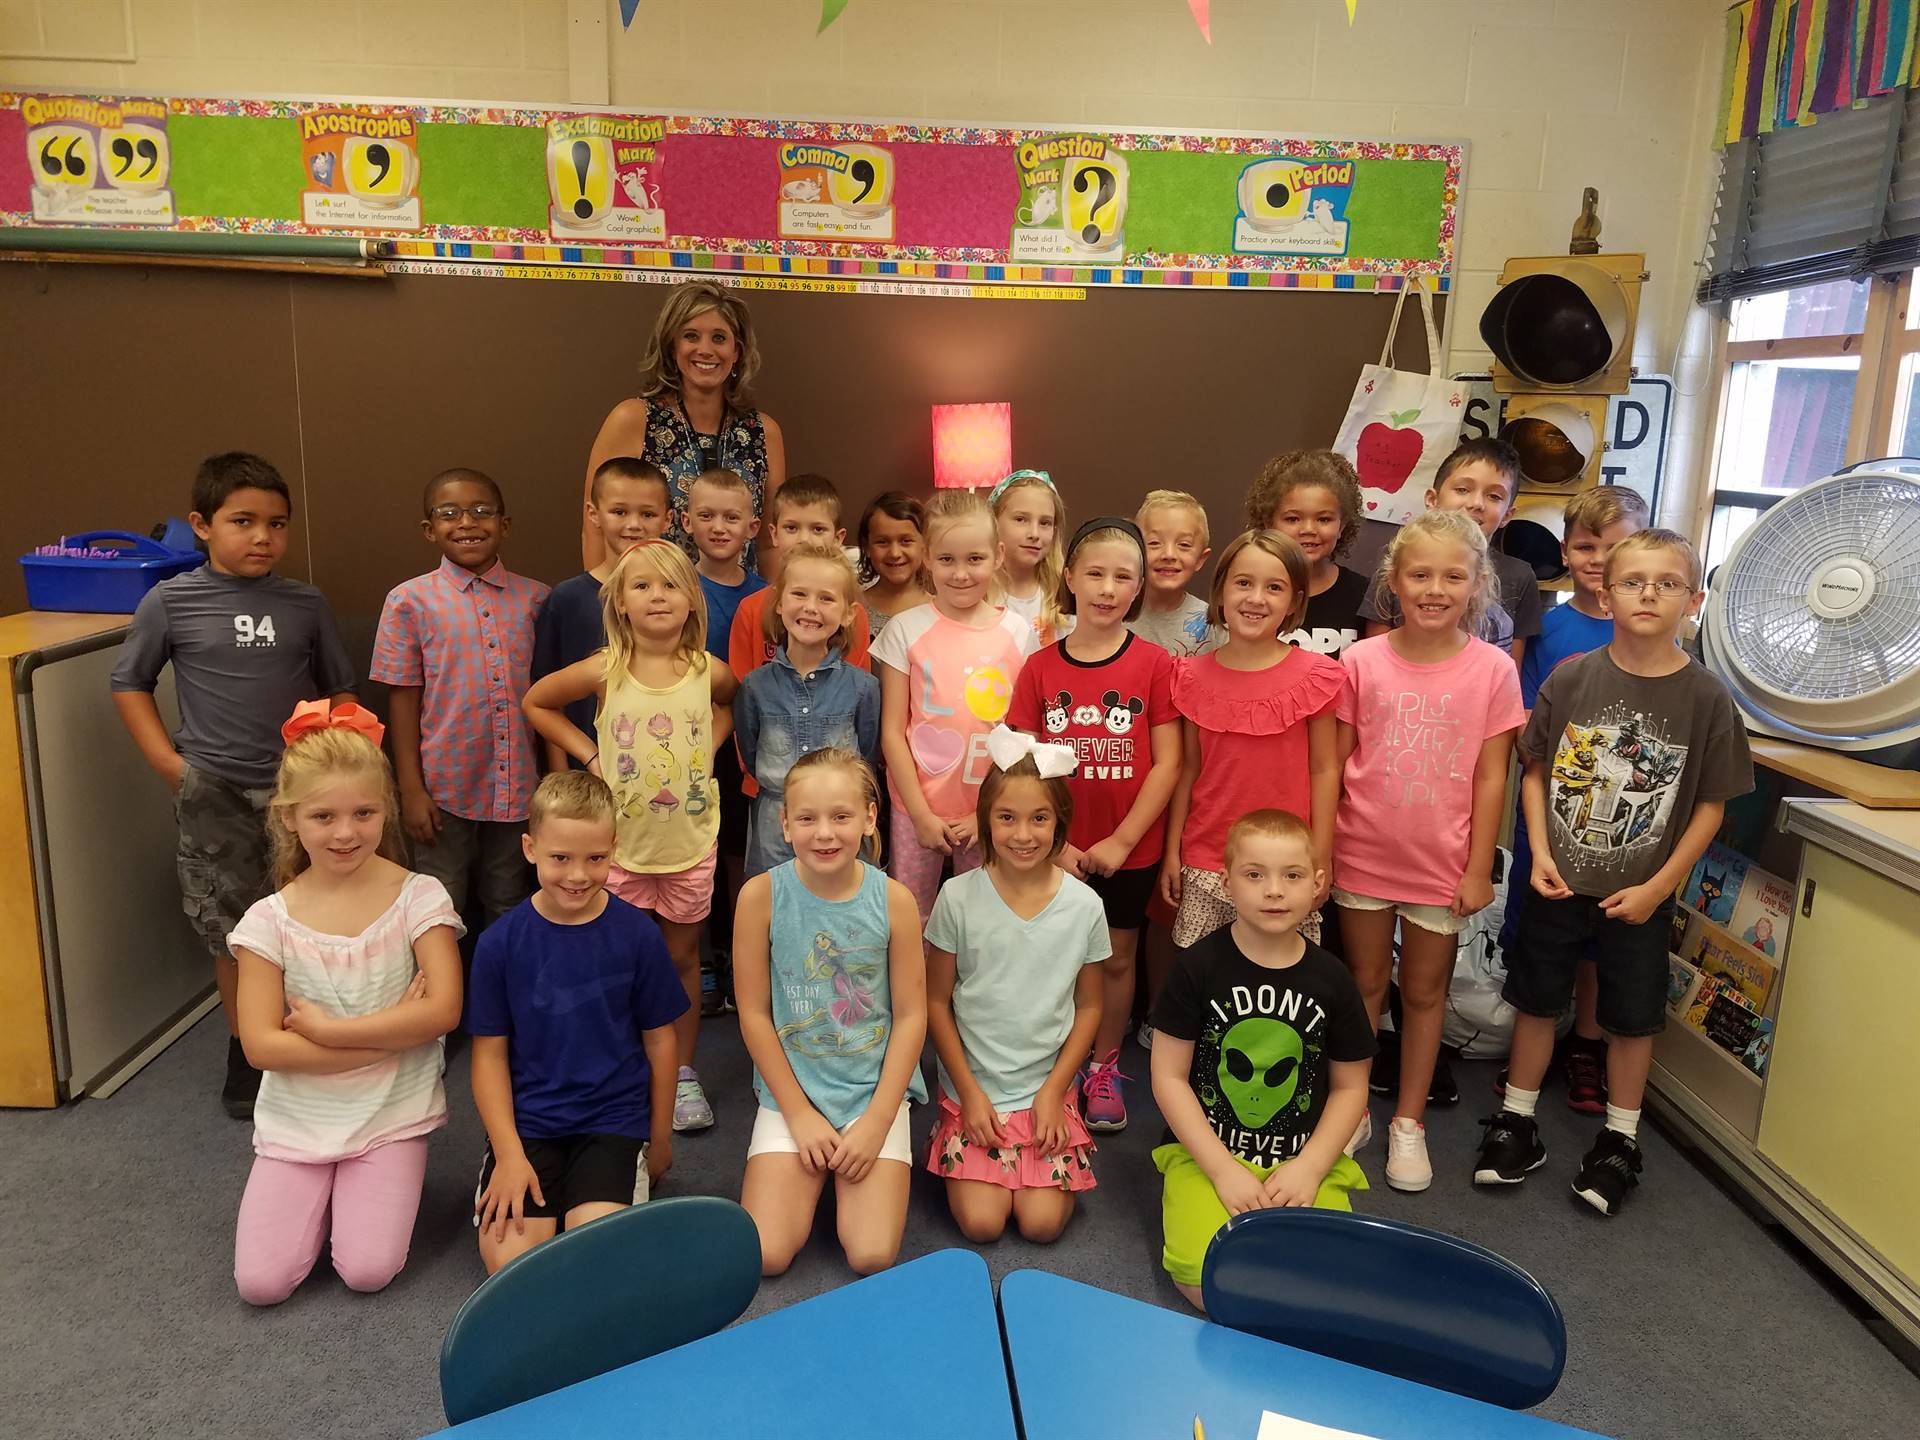 Mrs. Camilletti's class is ready for the new year!